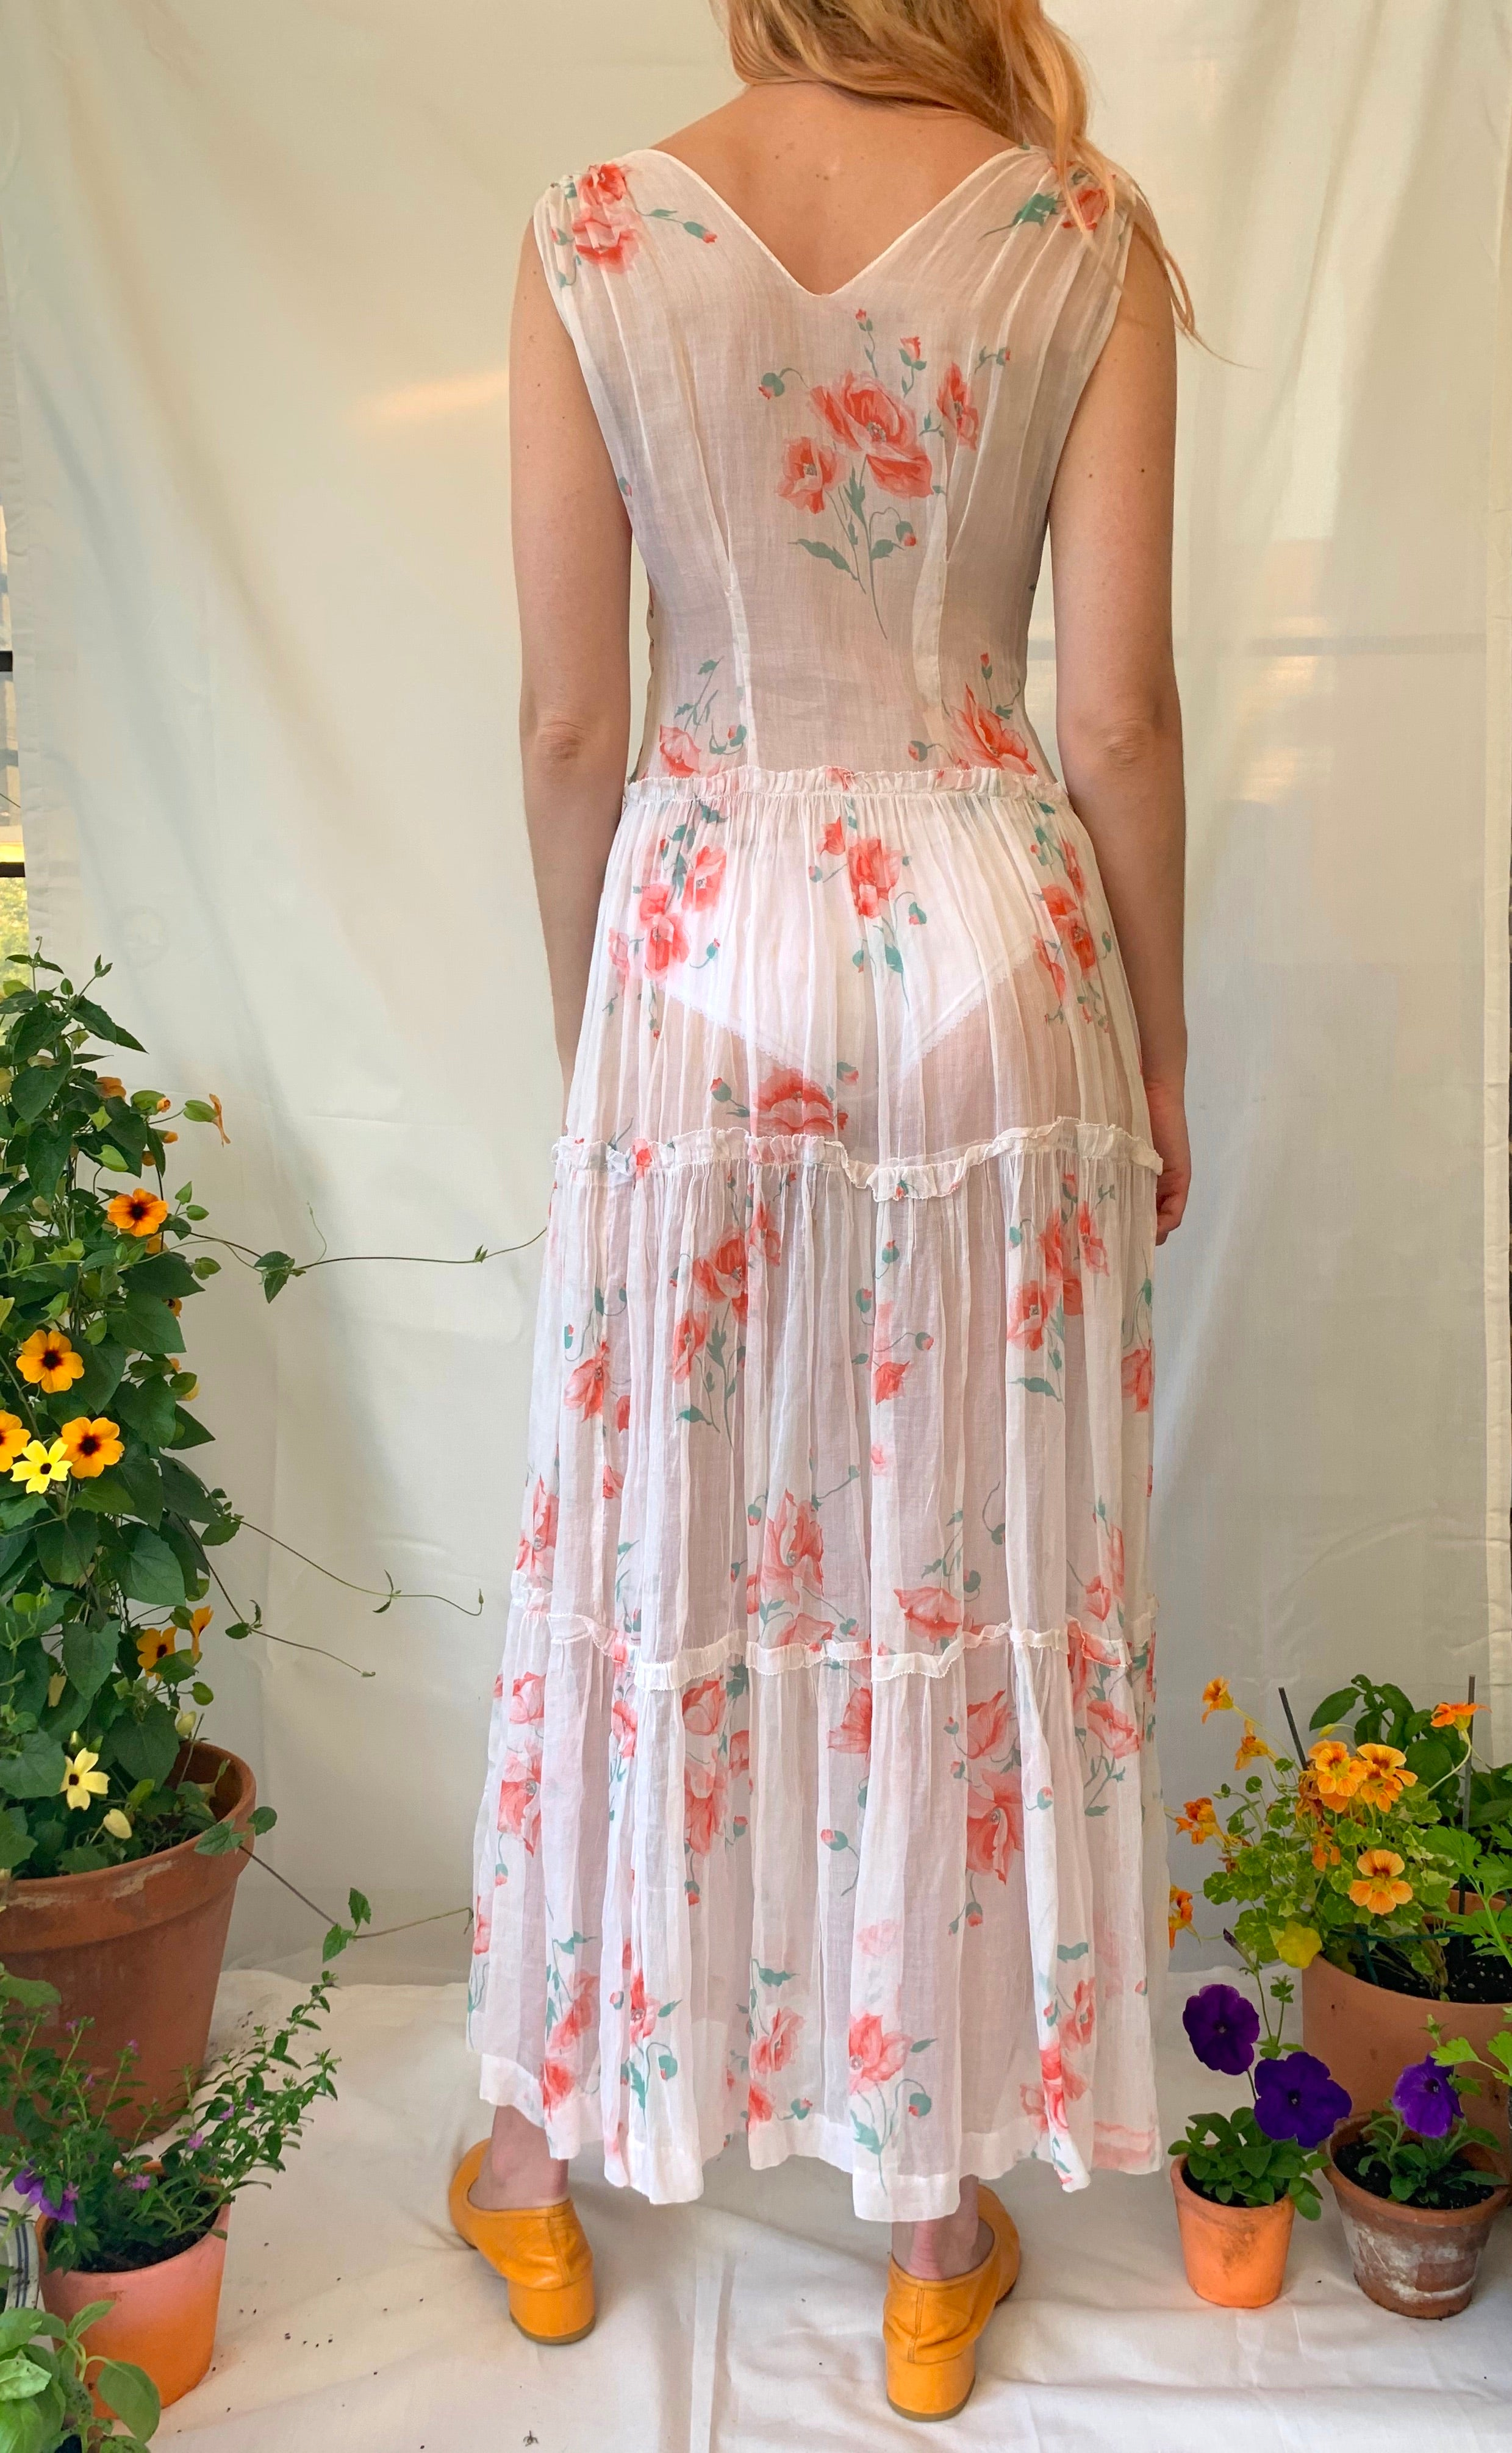 White Organza with Poppy Print Summer Dress